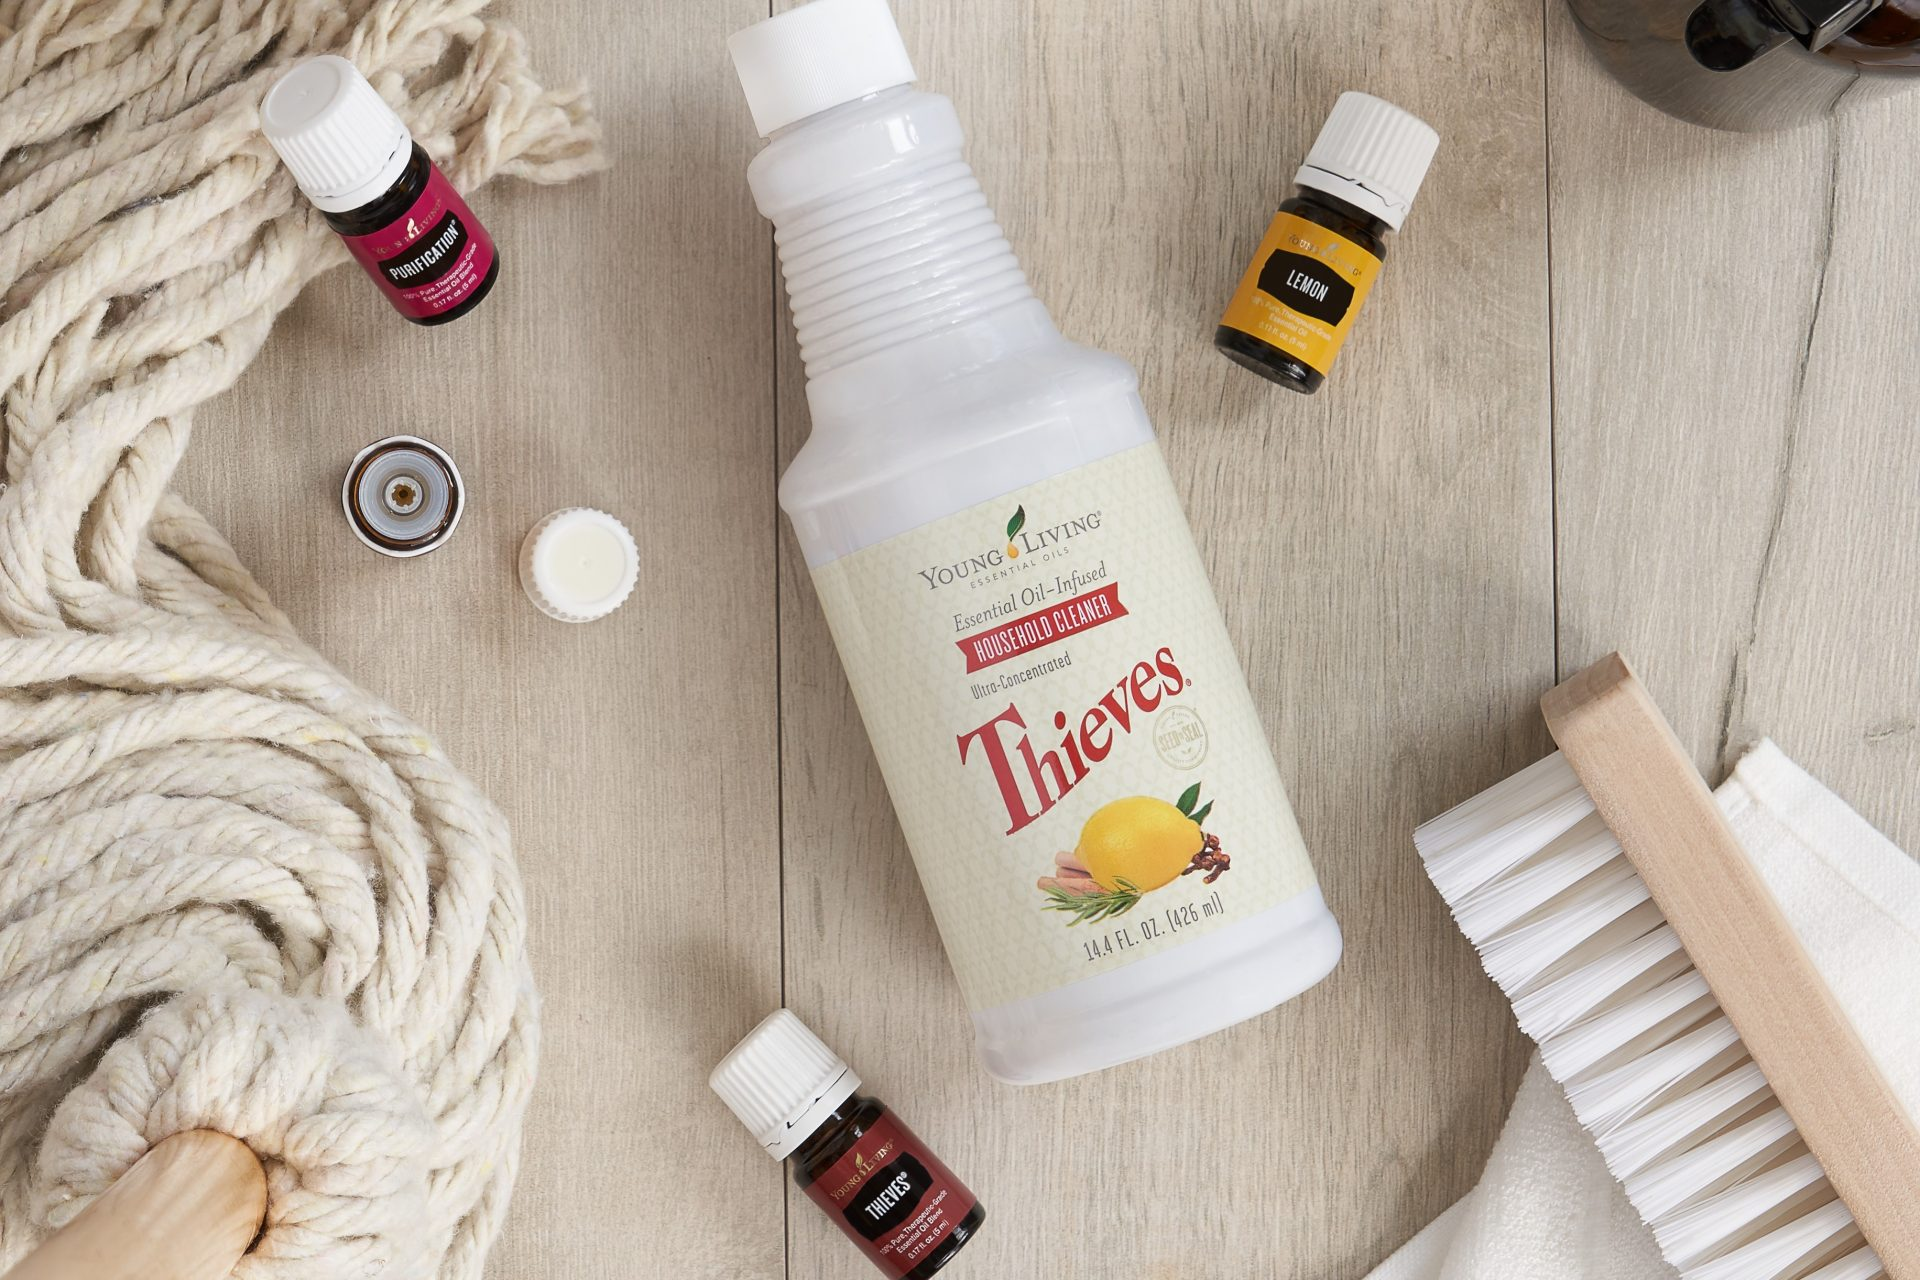 Thieves household cleaner, purification, thieves, aand lemon essential oils surrounded by cleaning supplies